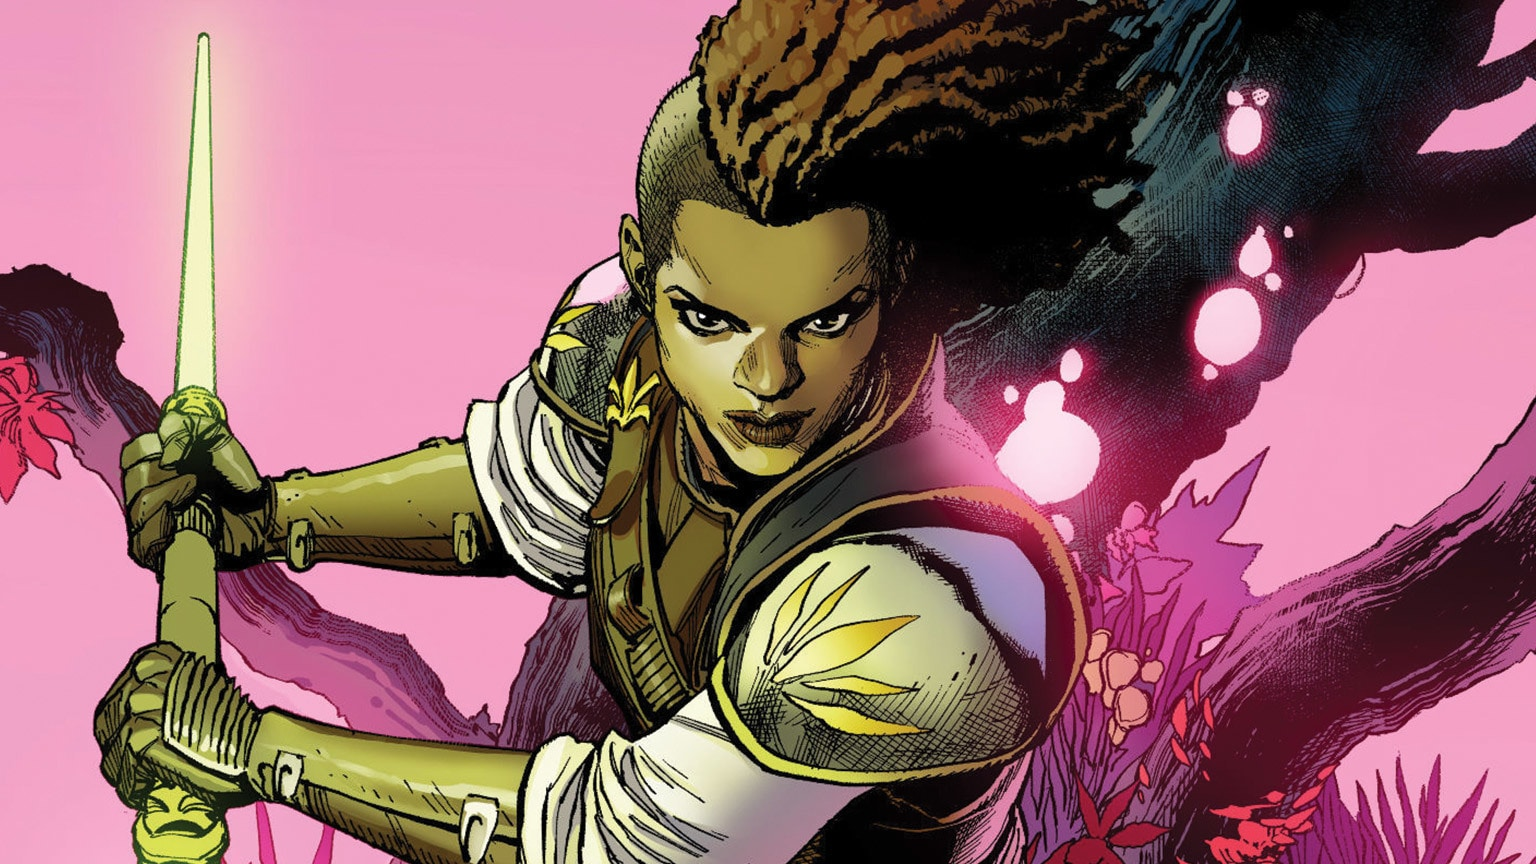 Betrayal in Marvel's Star Wars: The High Republic #4 – Exclusive Cover Reveal